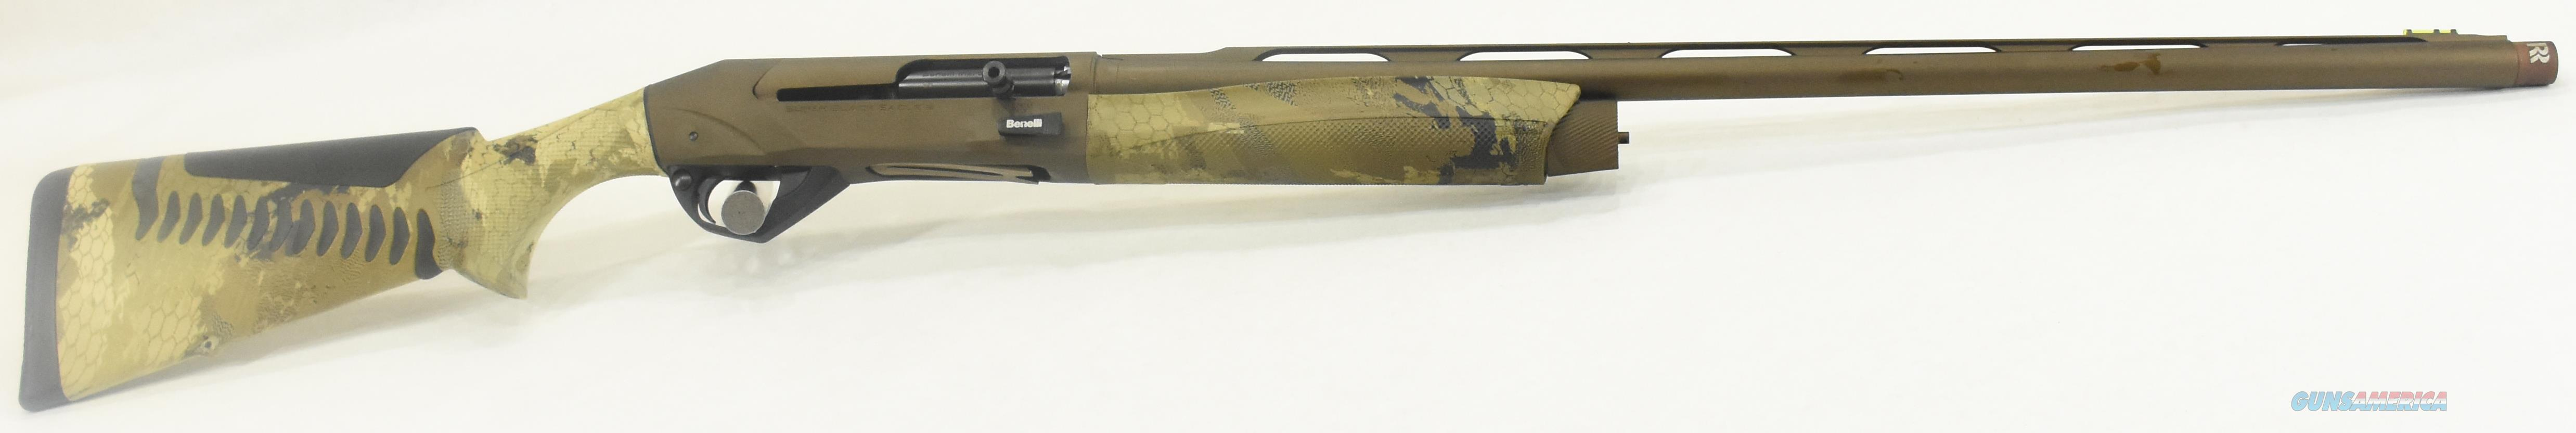 10357 Benelli Super Black Eagle 3 Performance Shop Waterfowl 12 Ga 28-3.5In  Guns > Shotguns > Benelli Shotguns > Sporting